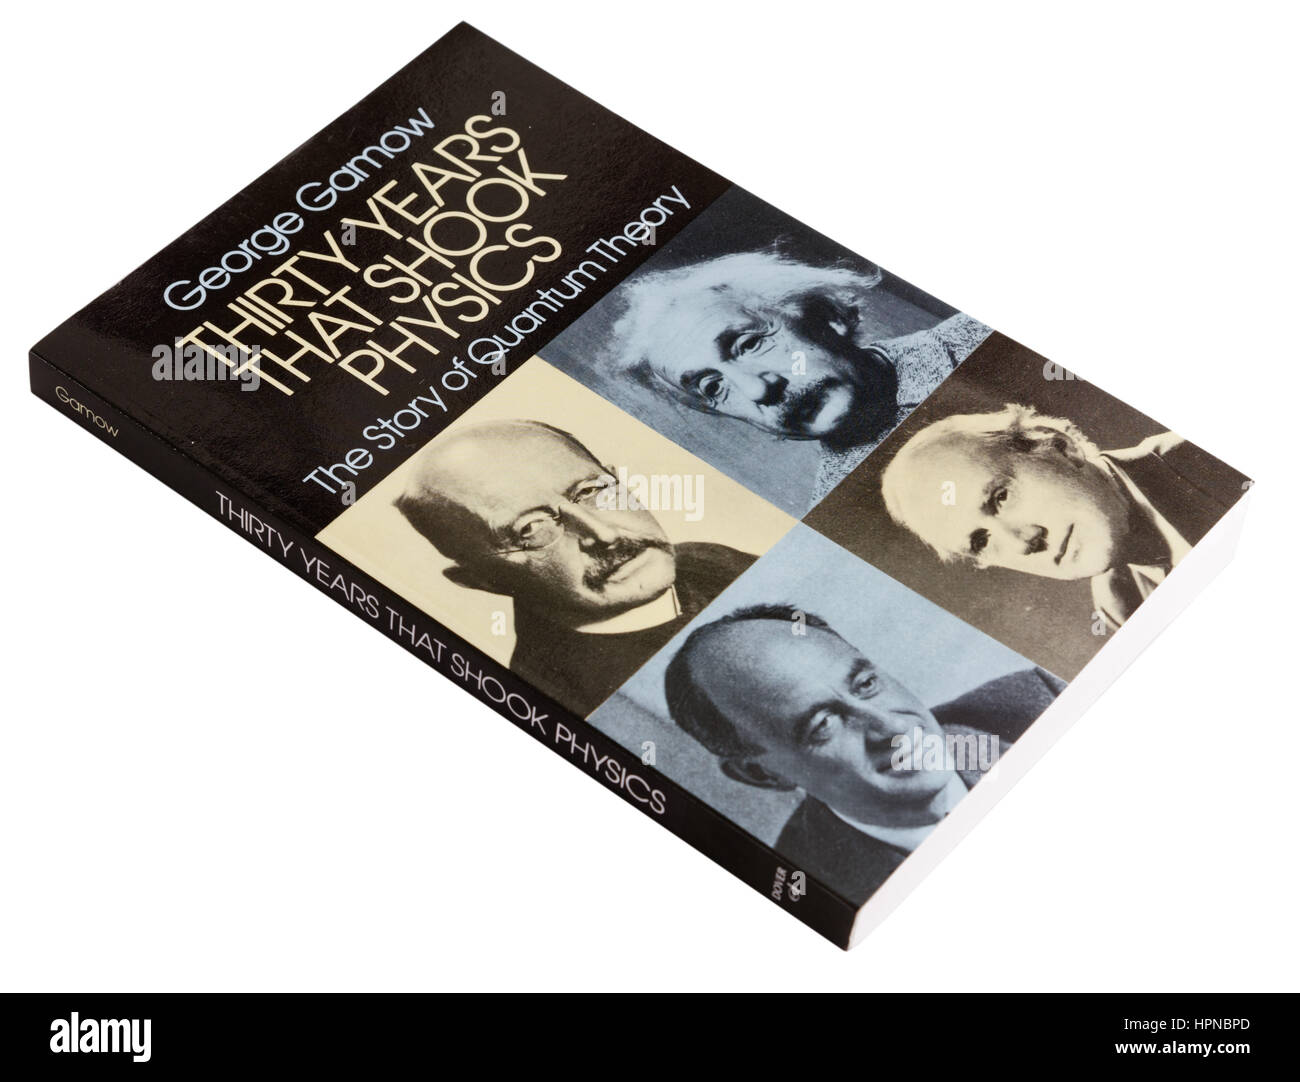 Thirty Years That Shook Physics by George Gamow - Stock Image